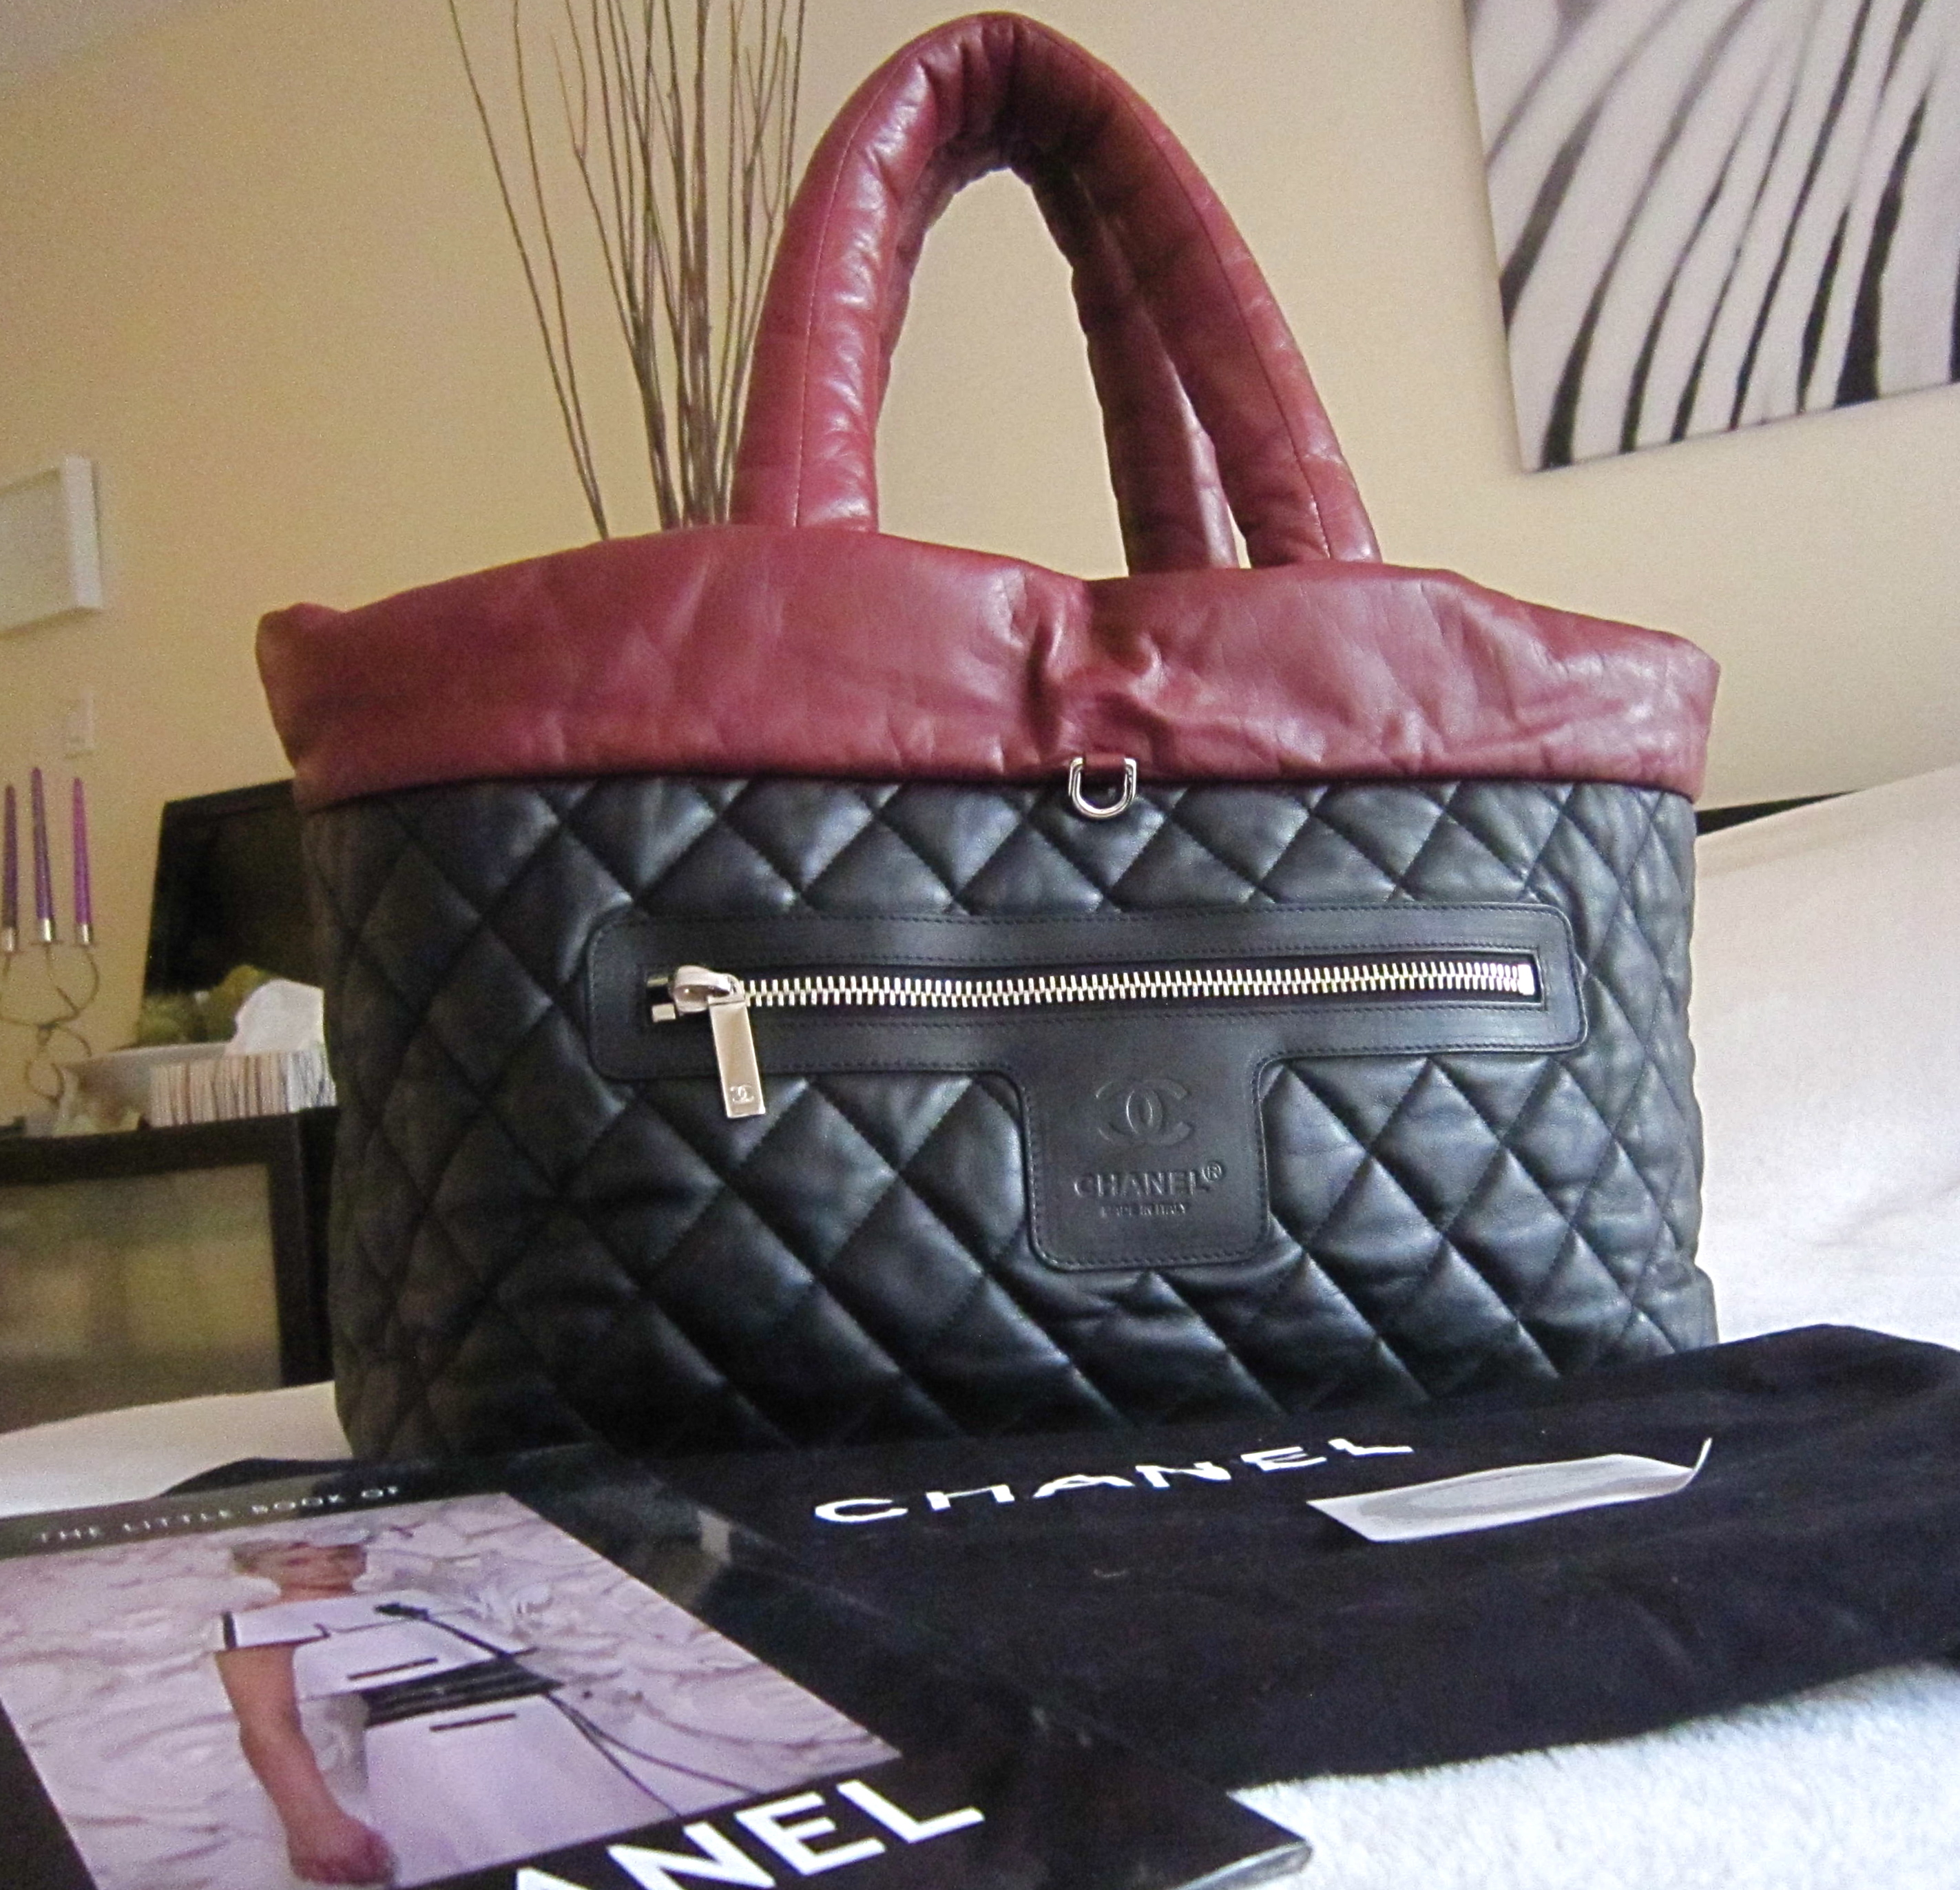 a46f35cb0 Home / Bags / Totes / Chanel Coco Cocoon Black/Burgundy Lambskin Leather  Reversible ...